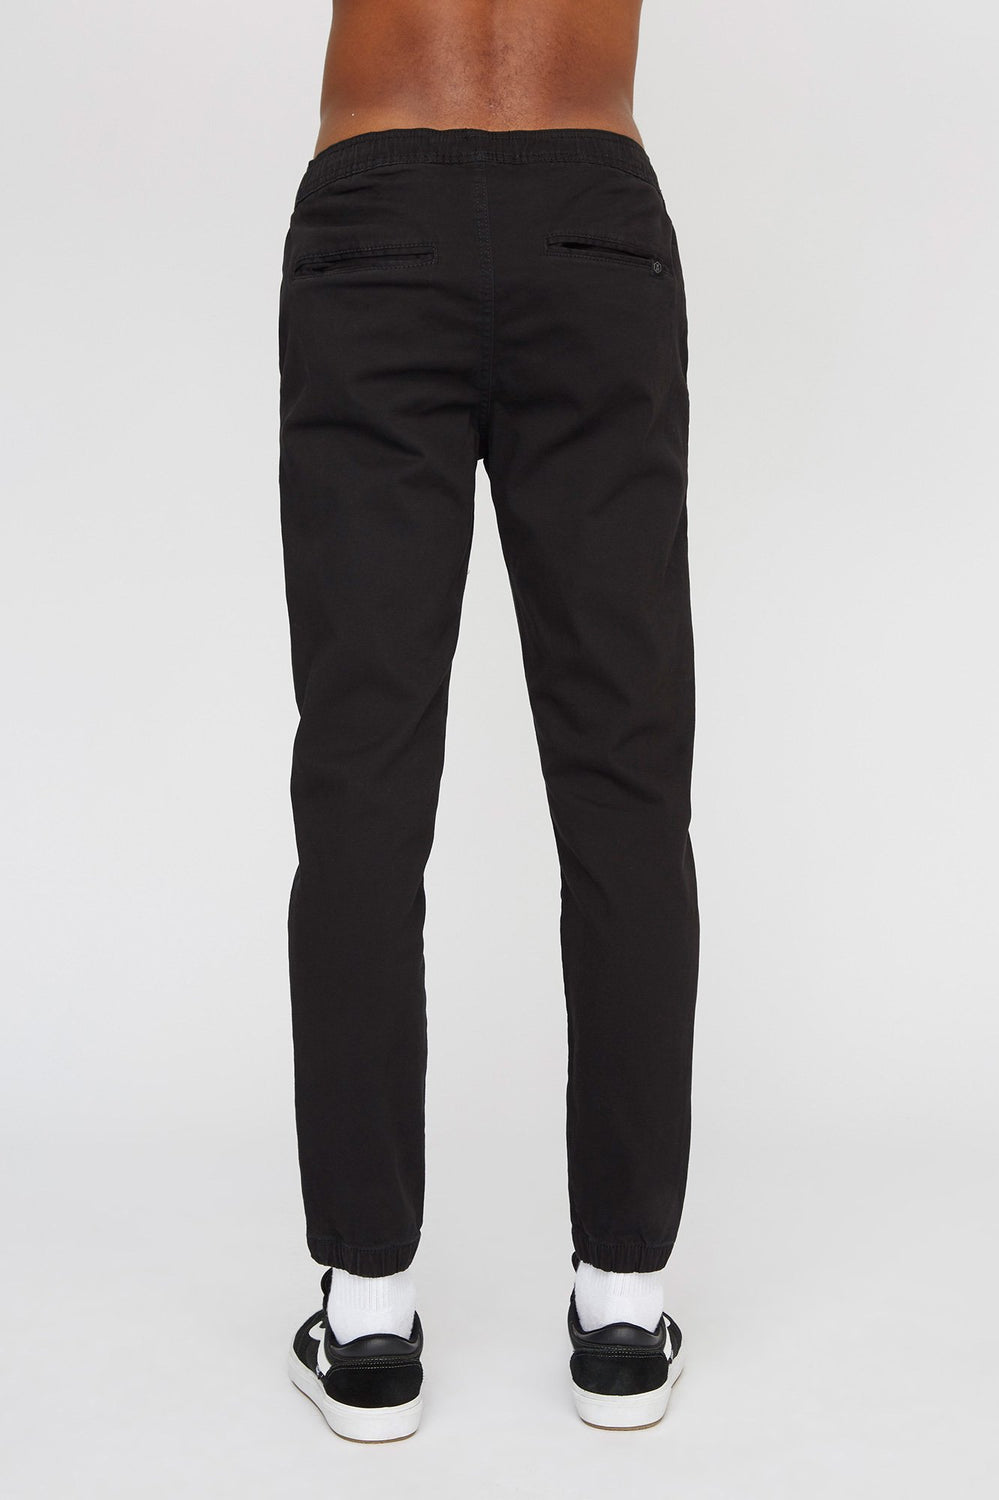 West49 Mens Solid Twill Basic Jogger Black